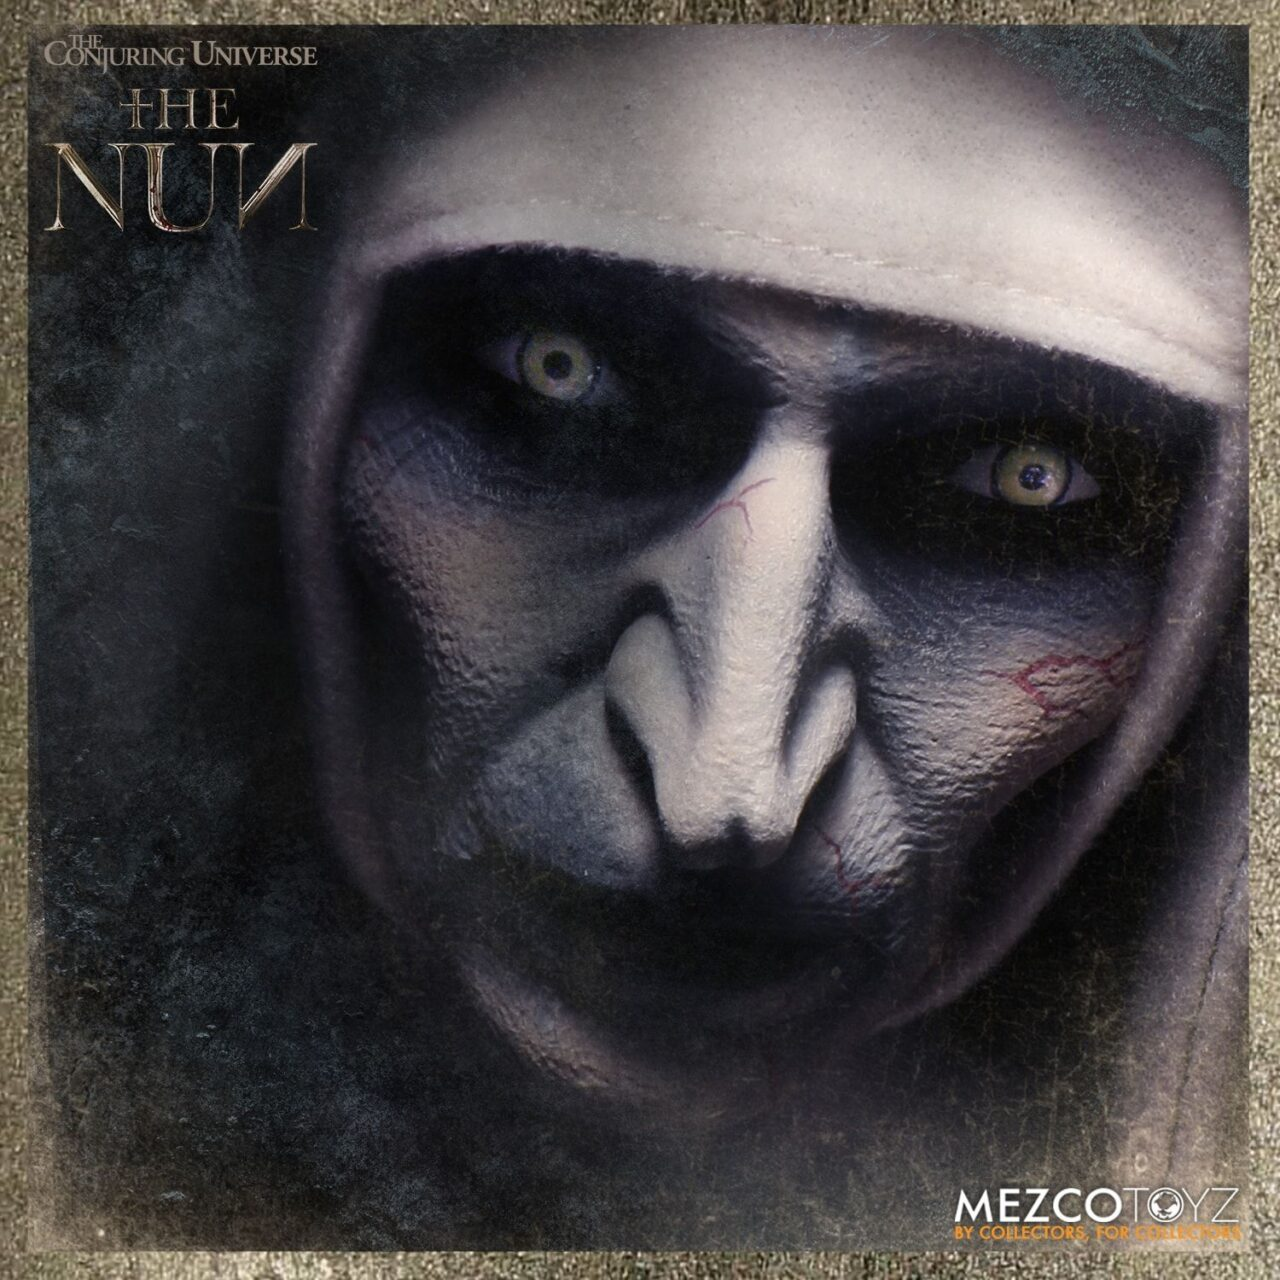 The Nun 1 1 scaled - Mezco's THE NUN Doll May Be Scarier Than the Movie Itself